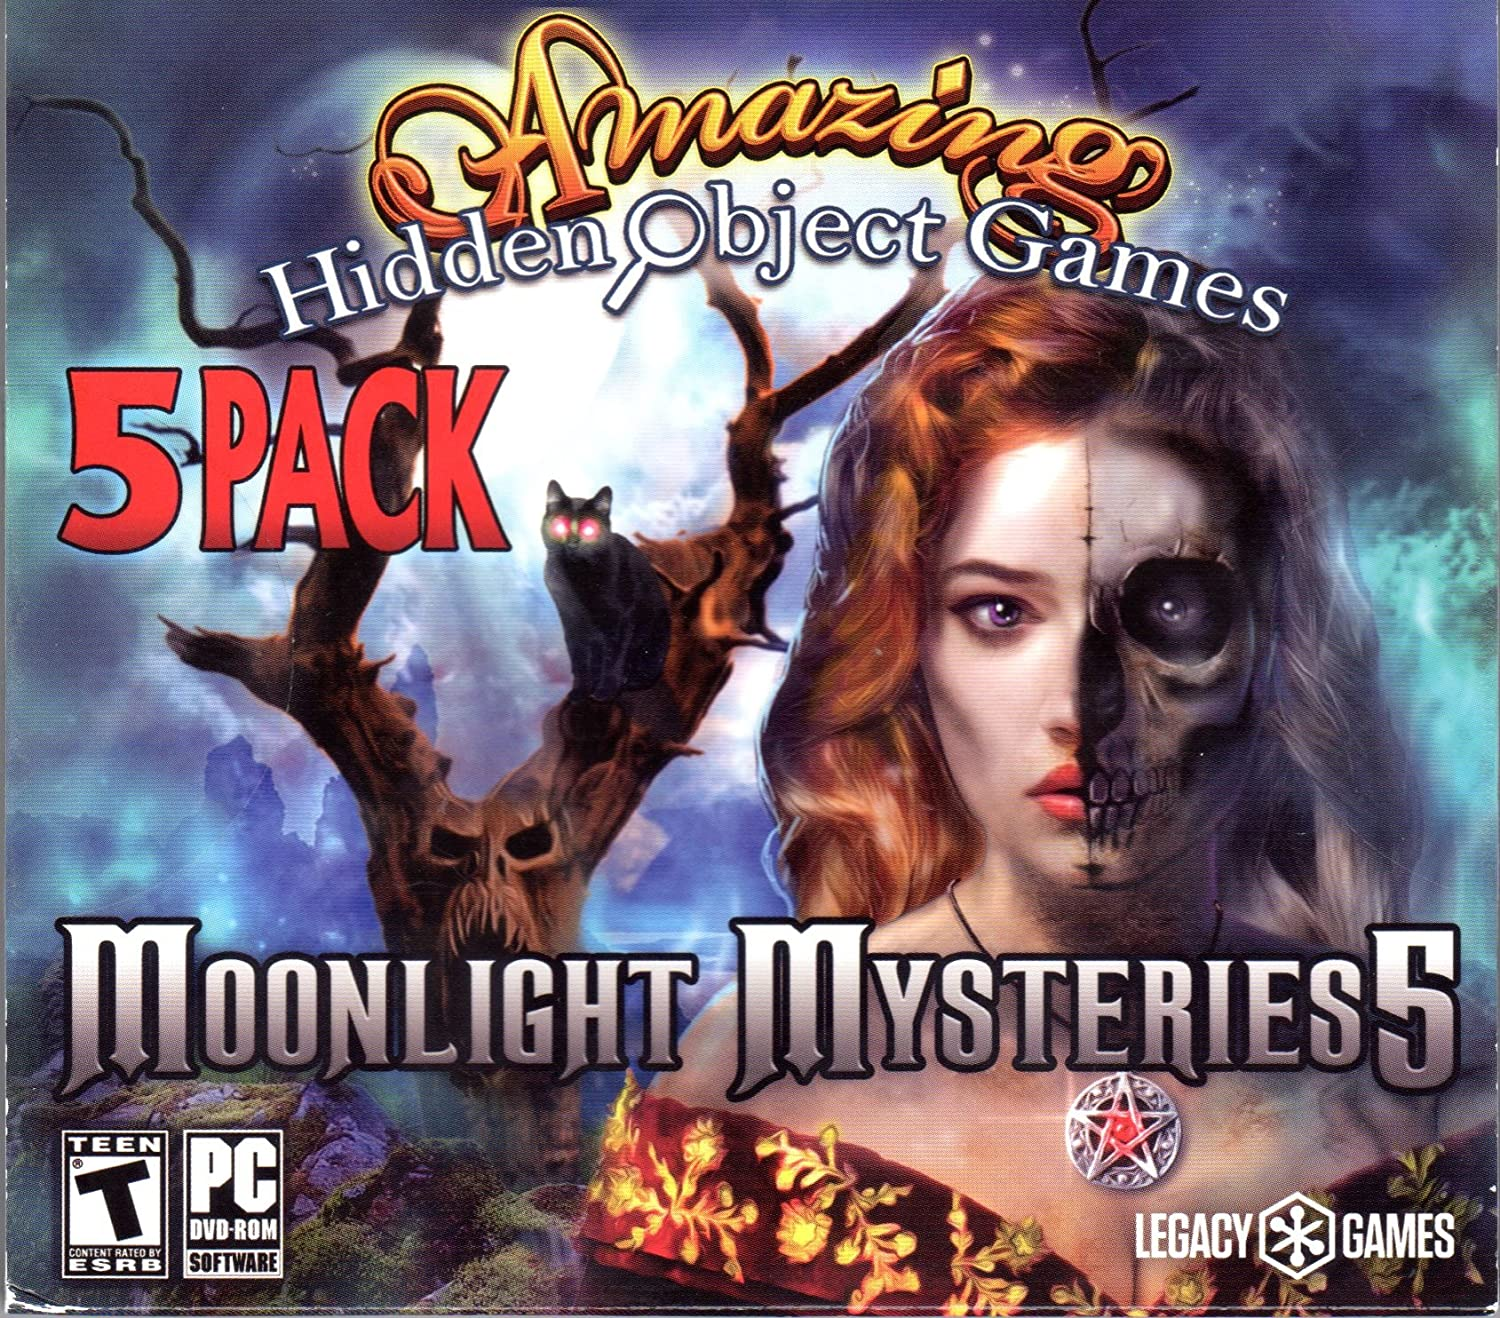 Legacy Amazing Hidden Object Games: Moonlight Mysteries 5 913h0J7wKKL